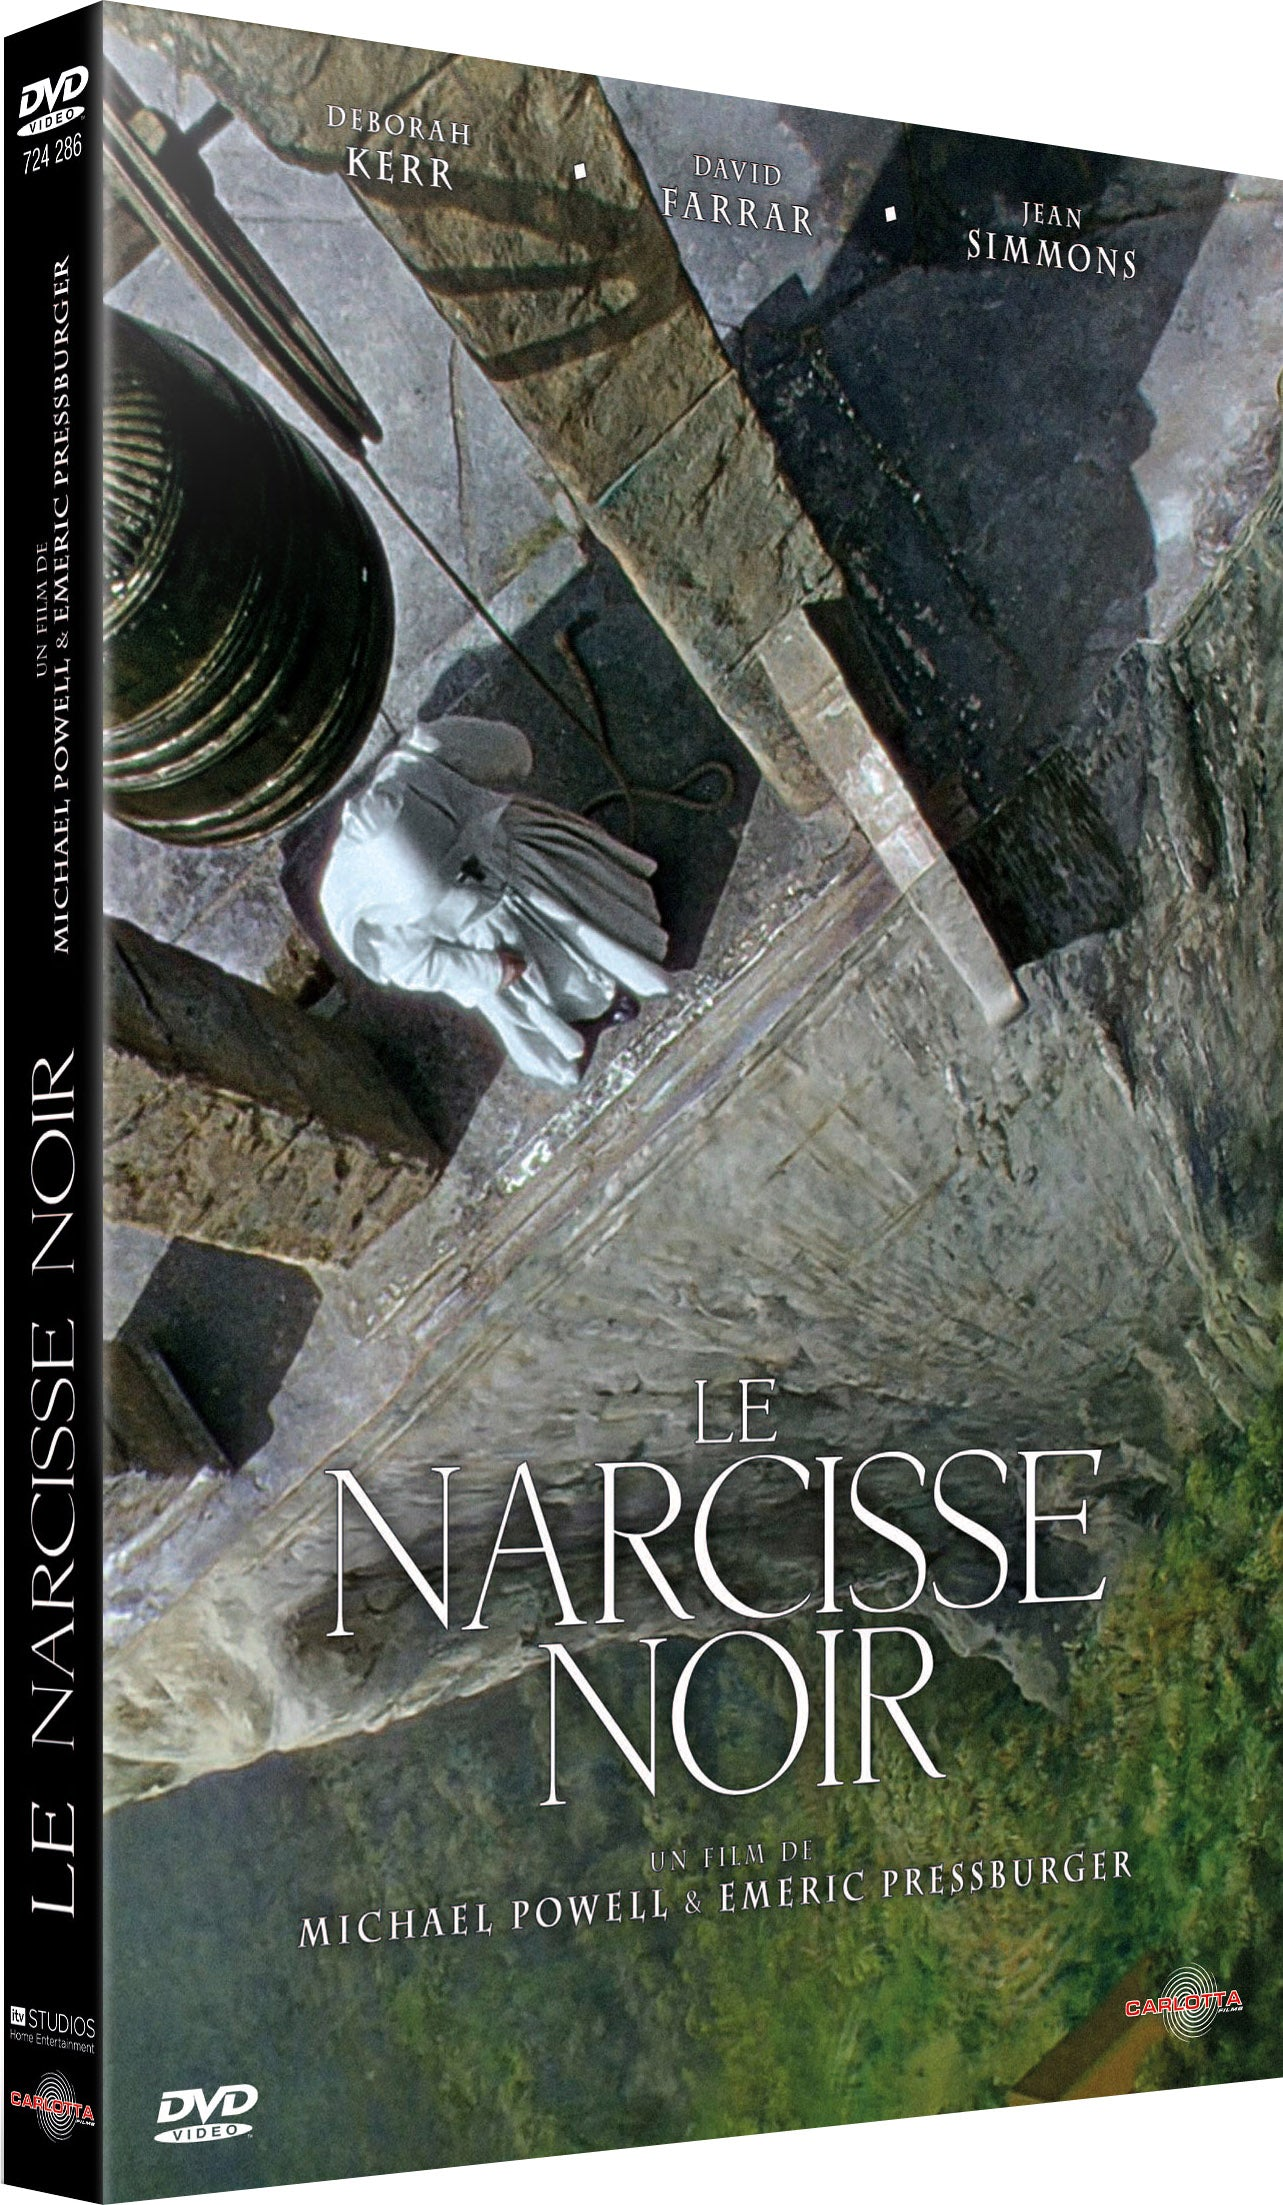 Le Narcisse noir de Michael Powell & Emeric Pressburger - CARLOTTA FILMS - La Boutique